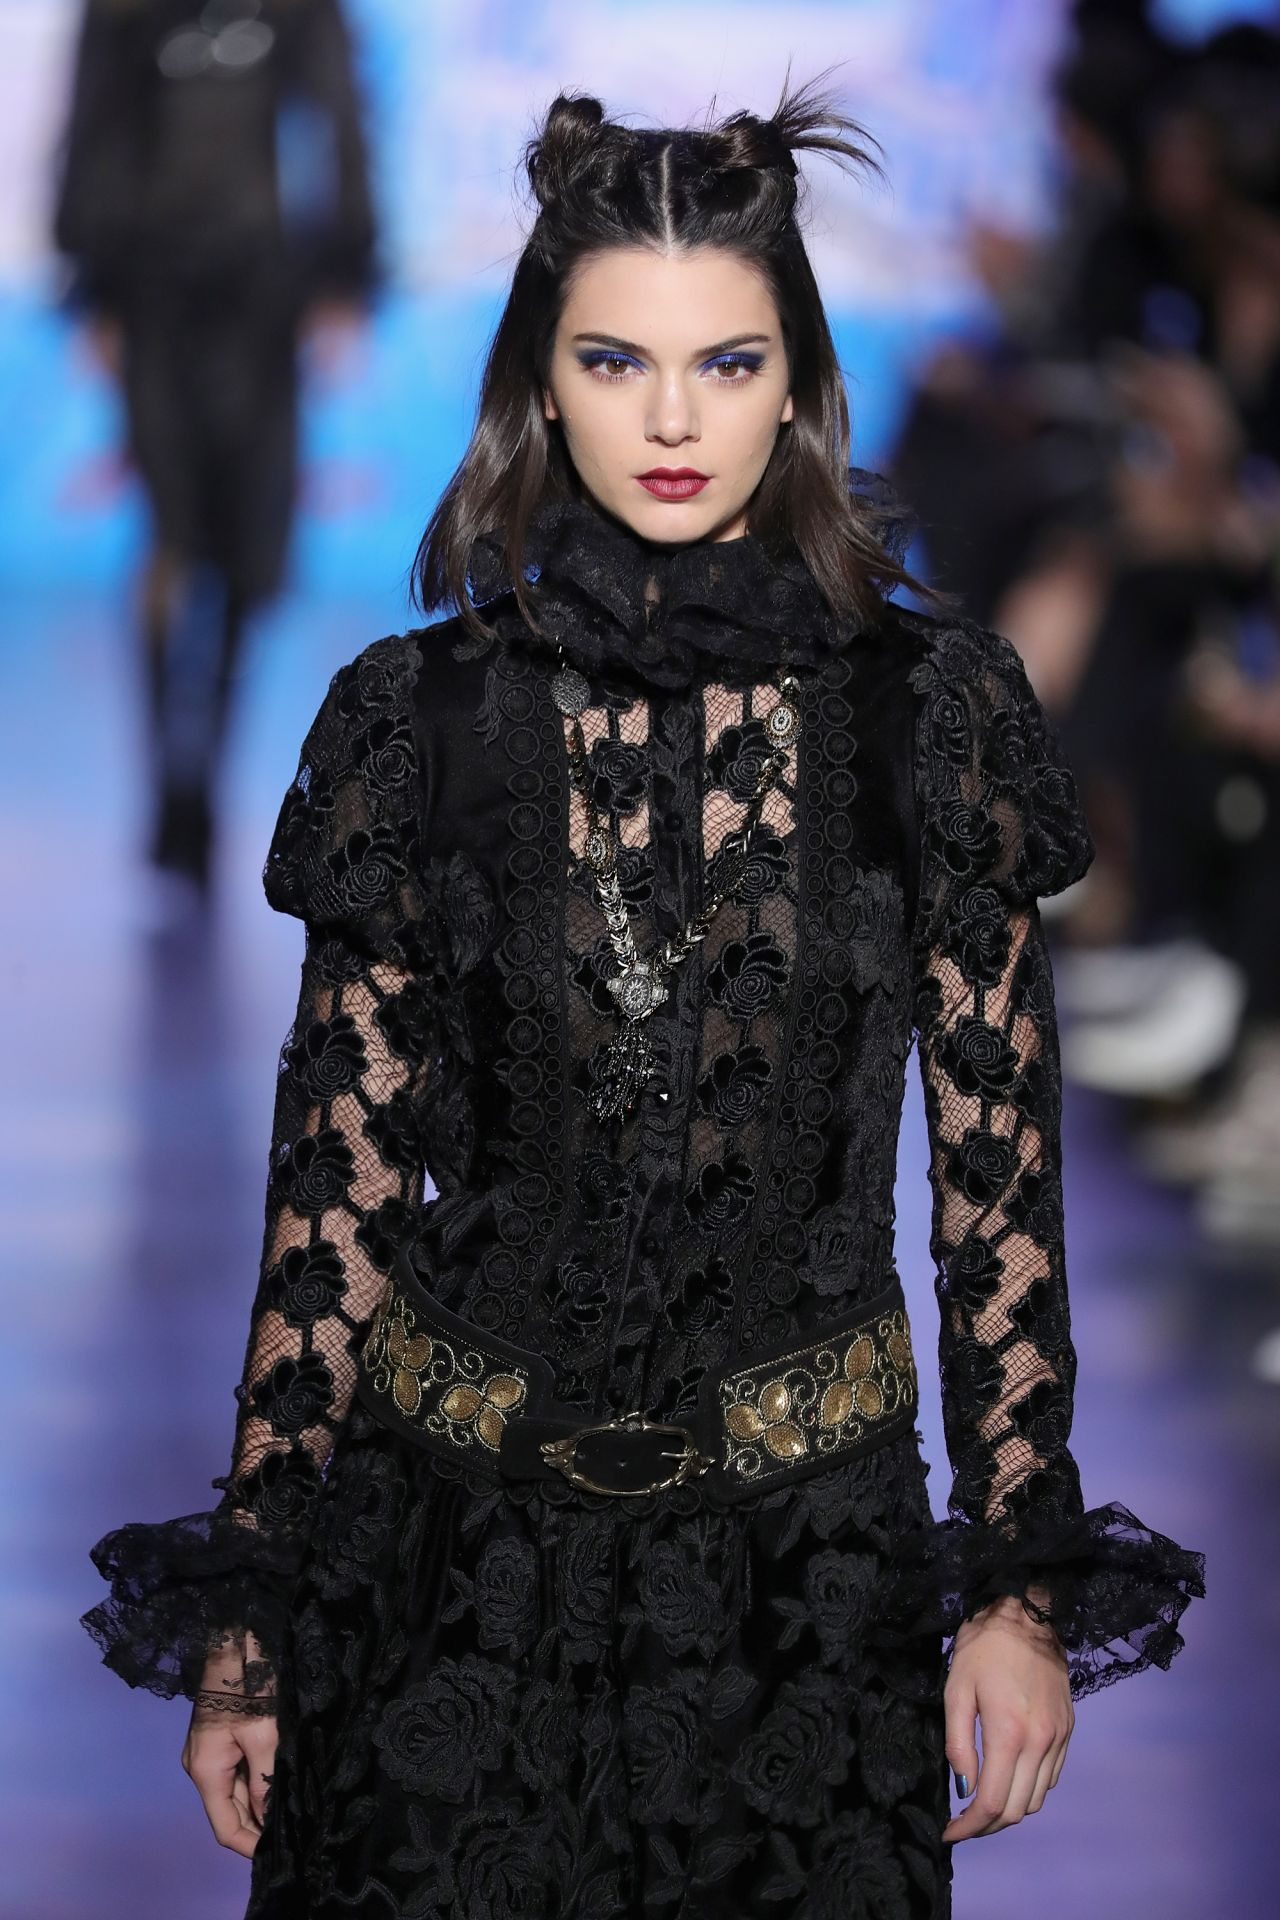 Kendall Jenner Supermodel Runway Walk Anna Sui Fashion Show In Nyc